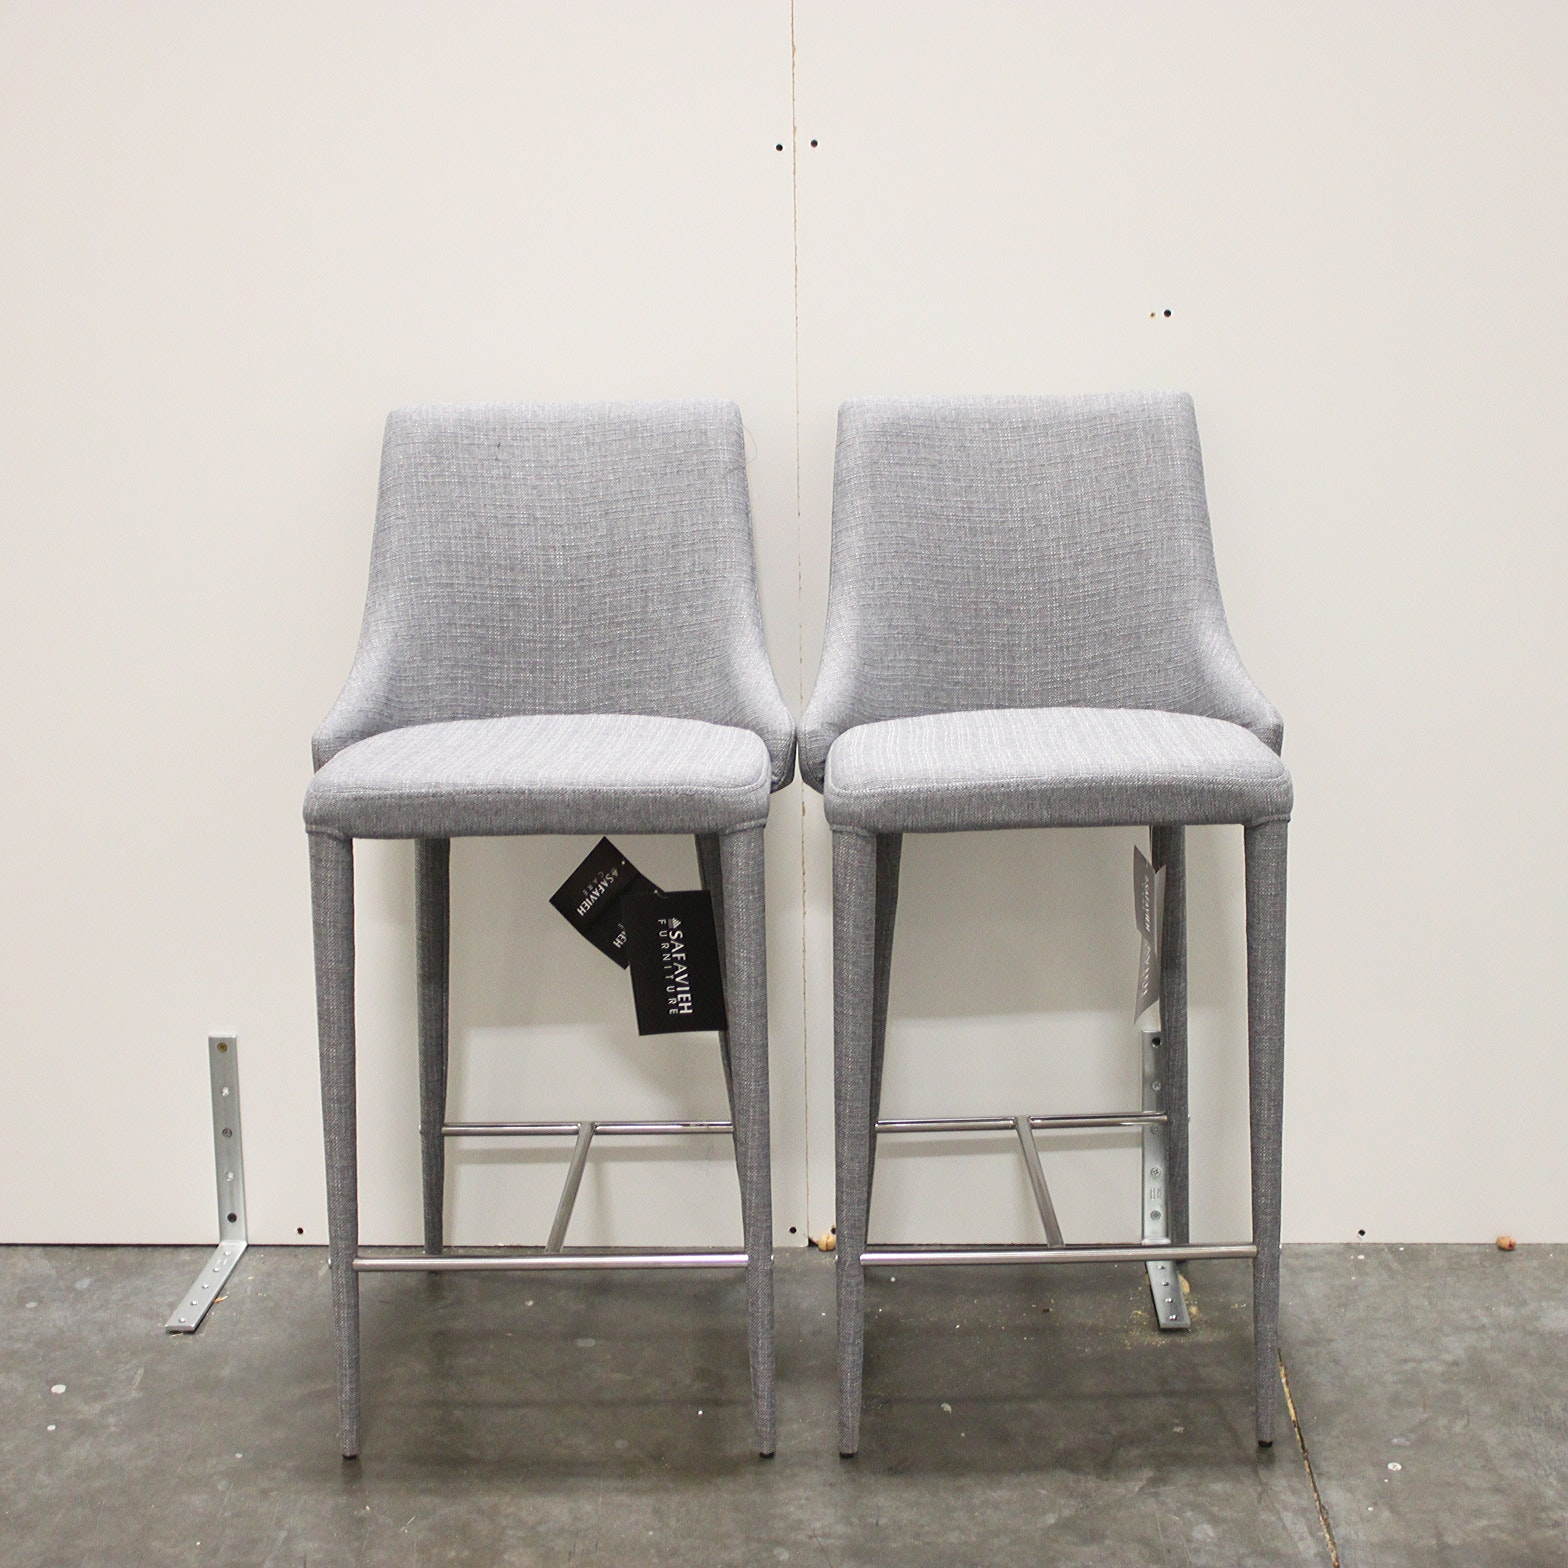 Pair of Gray Barstools by Safavieh Furniture